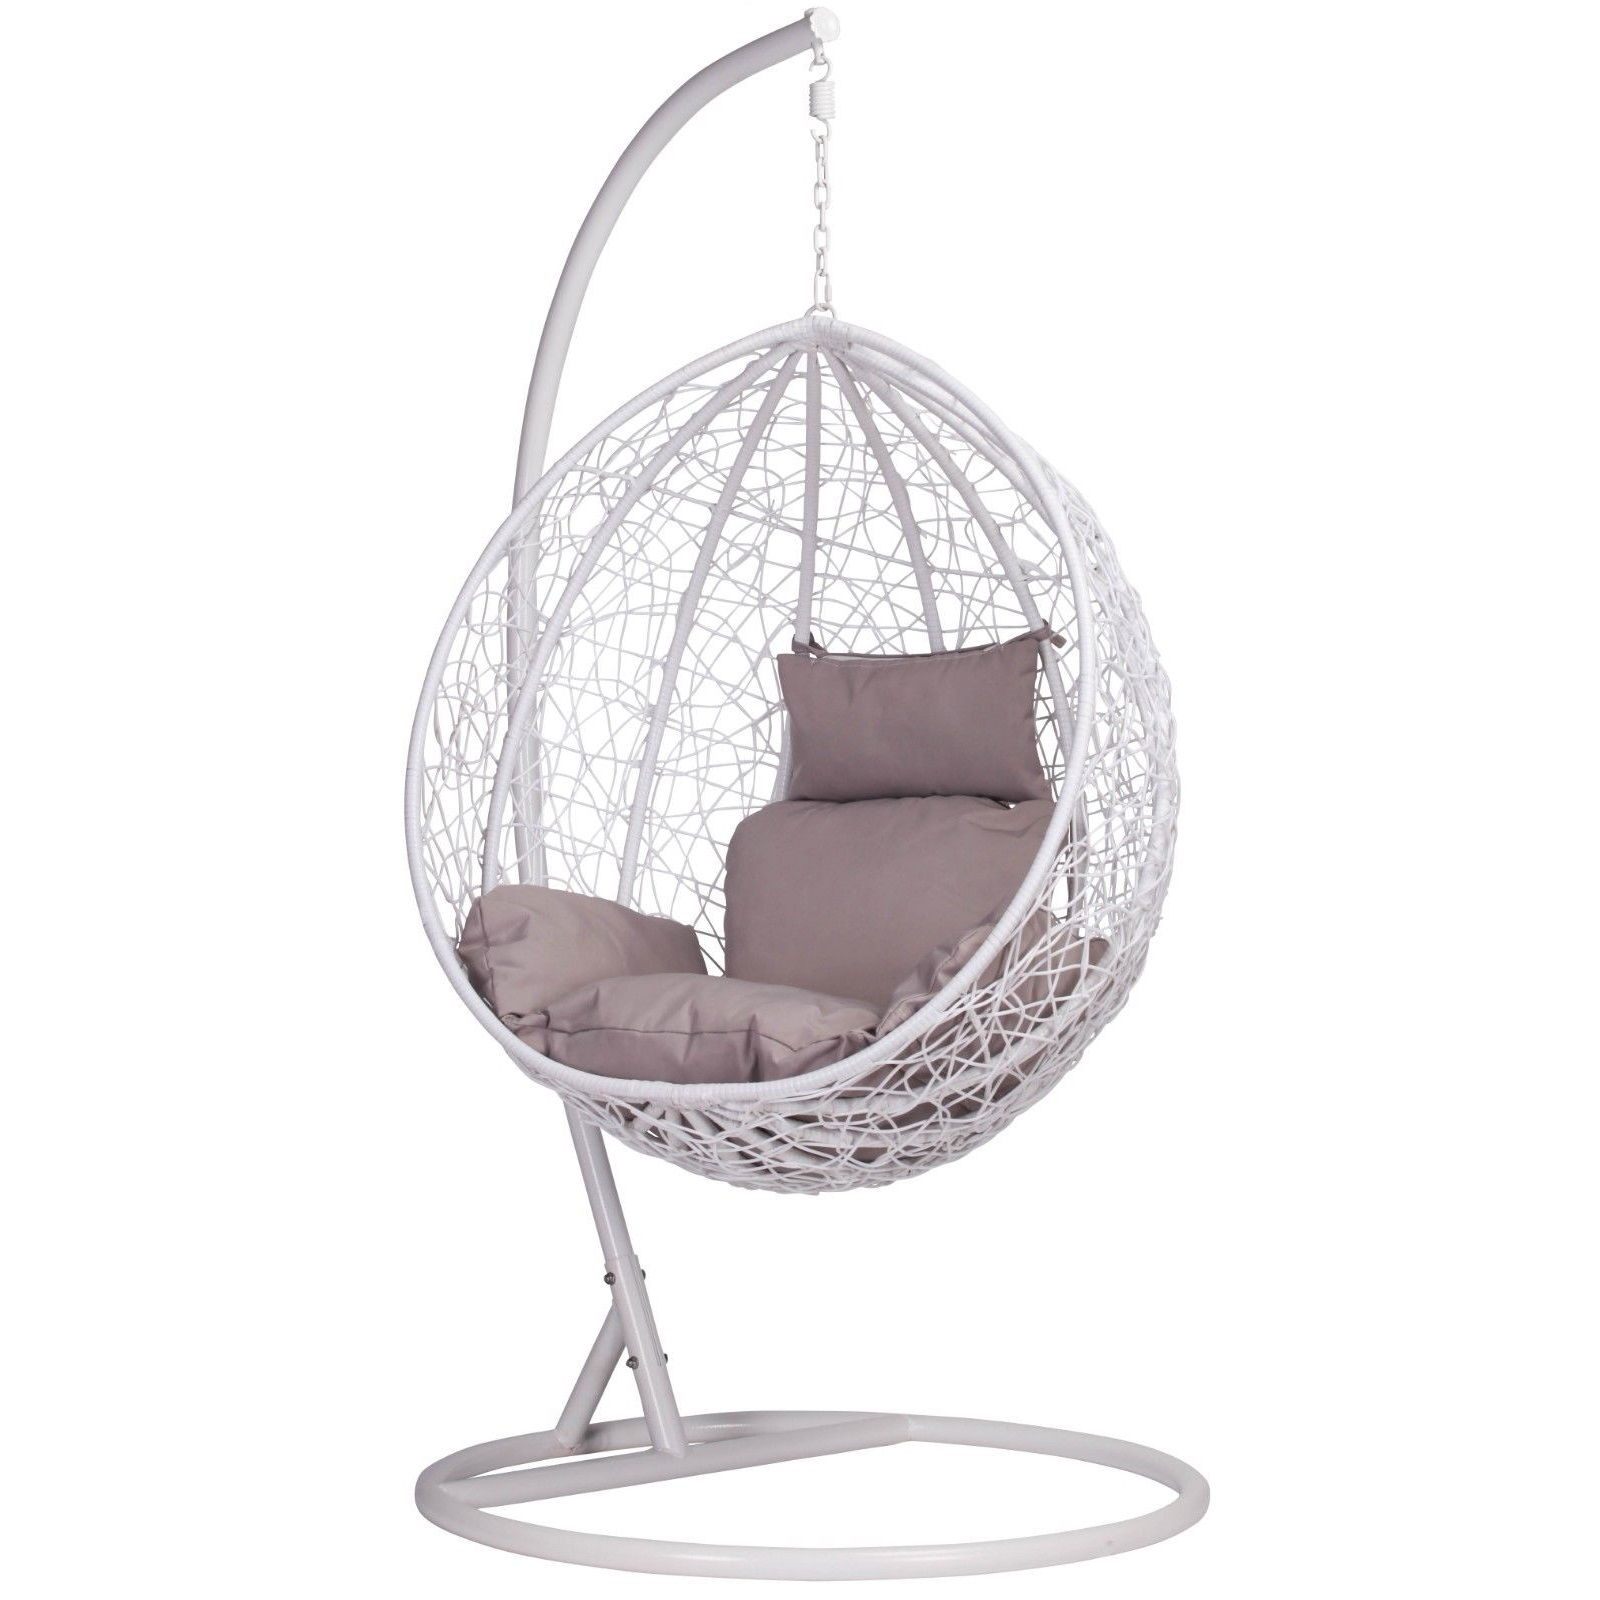 Egg Chair Hanging From Ceiling White Rattan Swing Weave Patio Garden Hanging Egg Chair